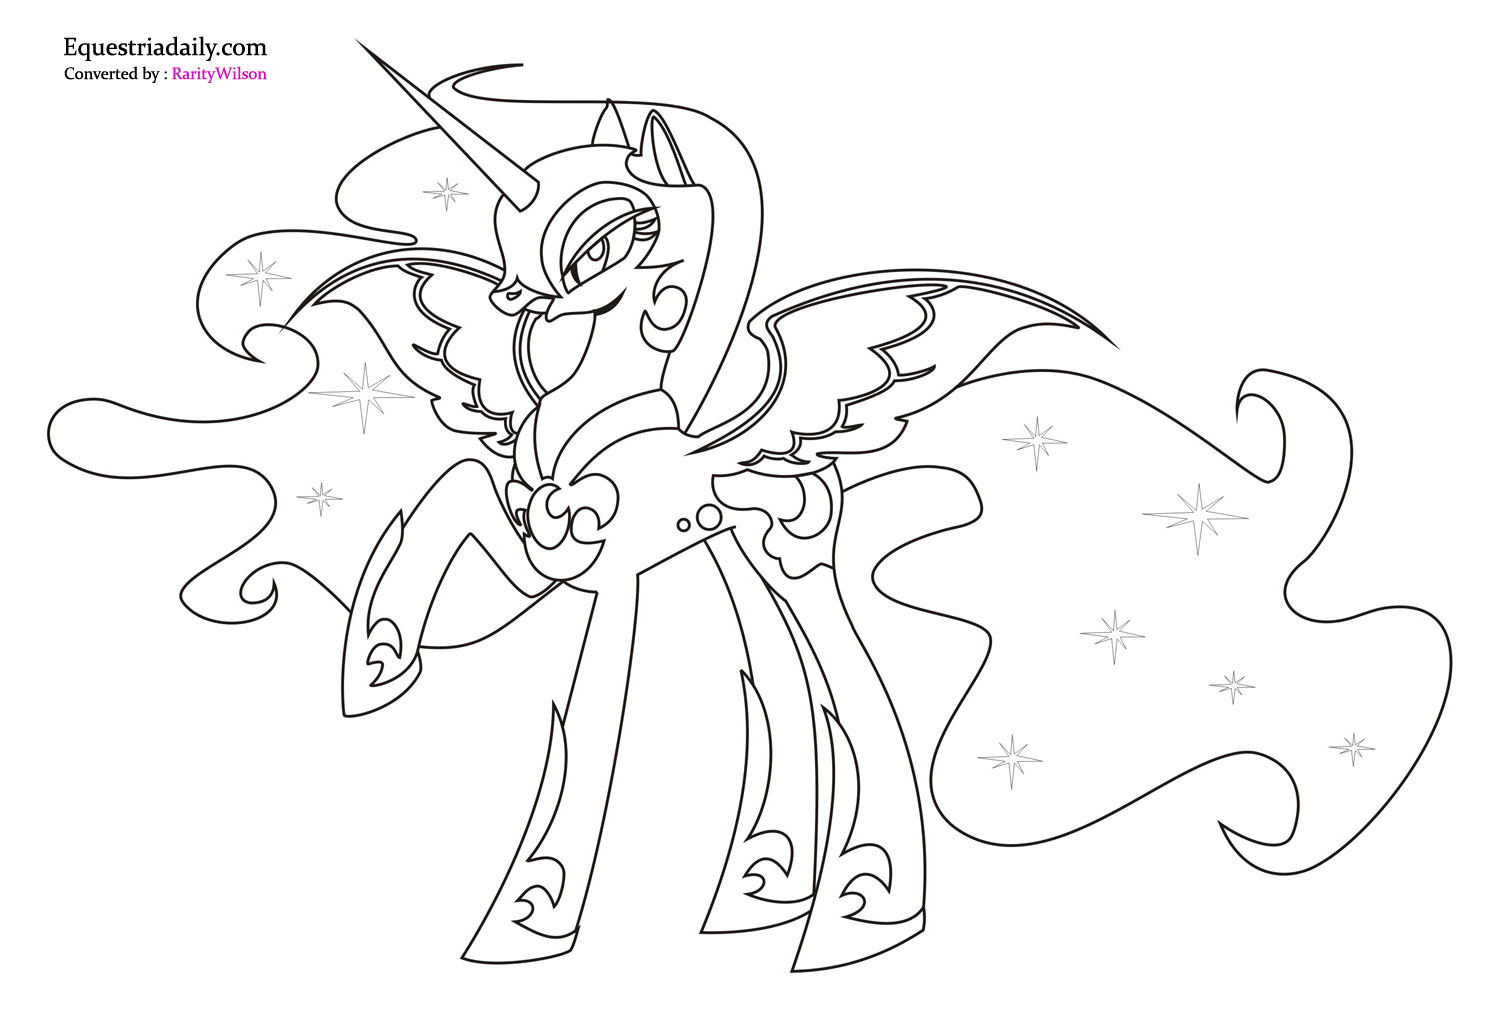 Barbie Coloring Pages blogspot furthermore Kolorowanki My Little Pony Scootaloo Kolorowanki also 147 Draw Pluto likewise Ti84 further Nightmare Moon Coloring Pages. on 8 bit twilight sparkle